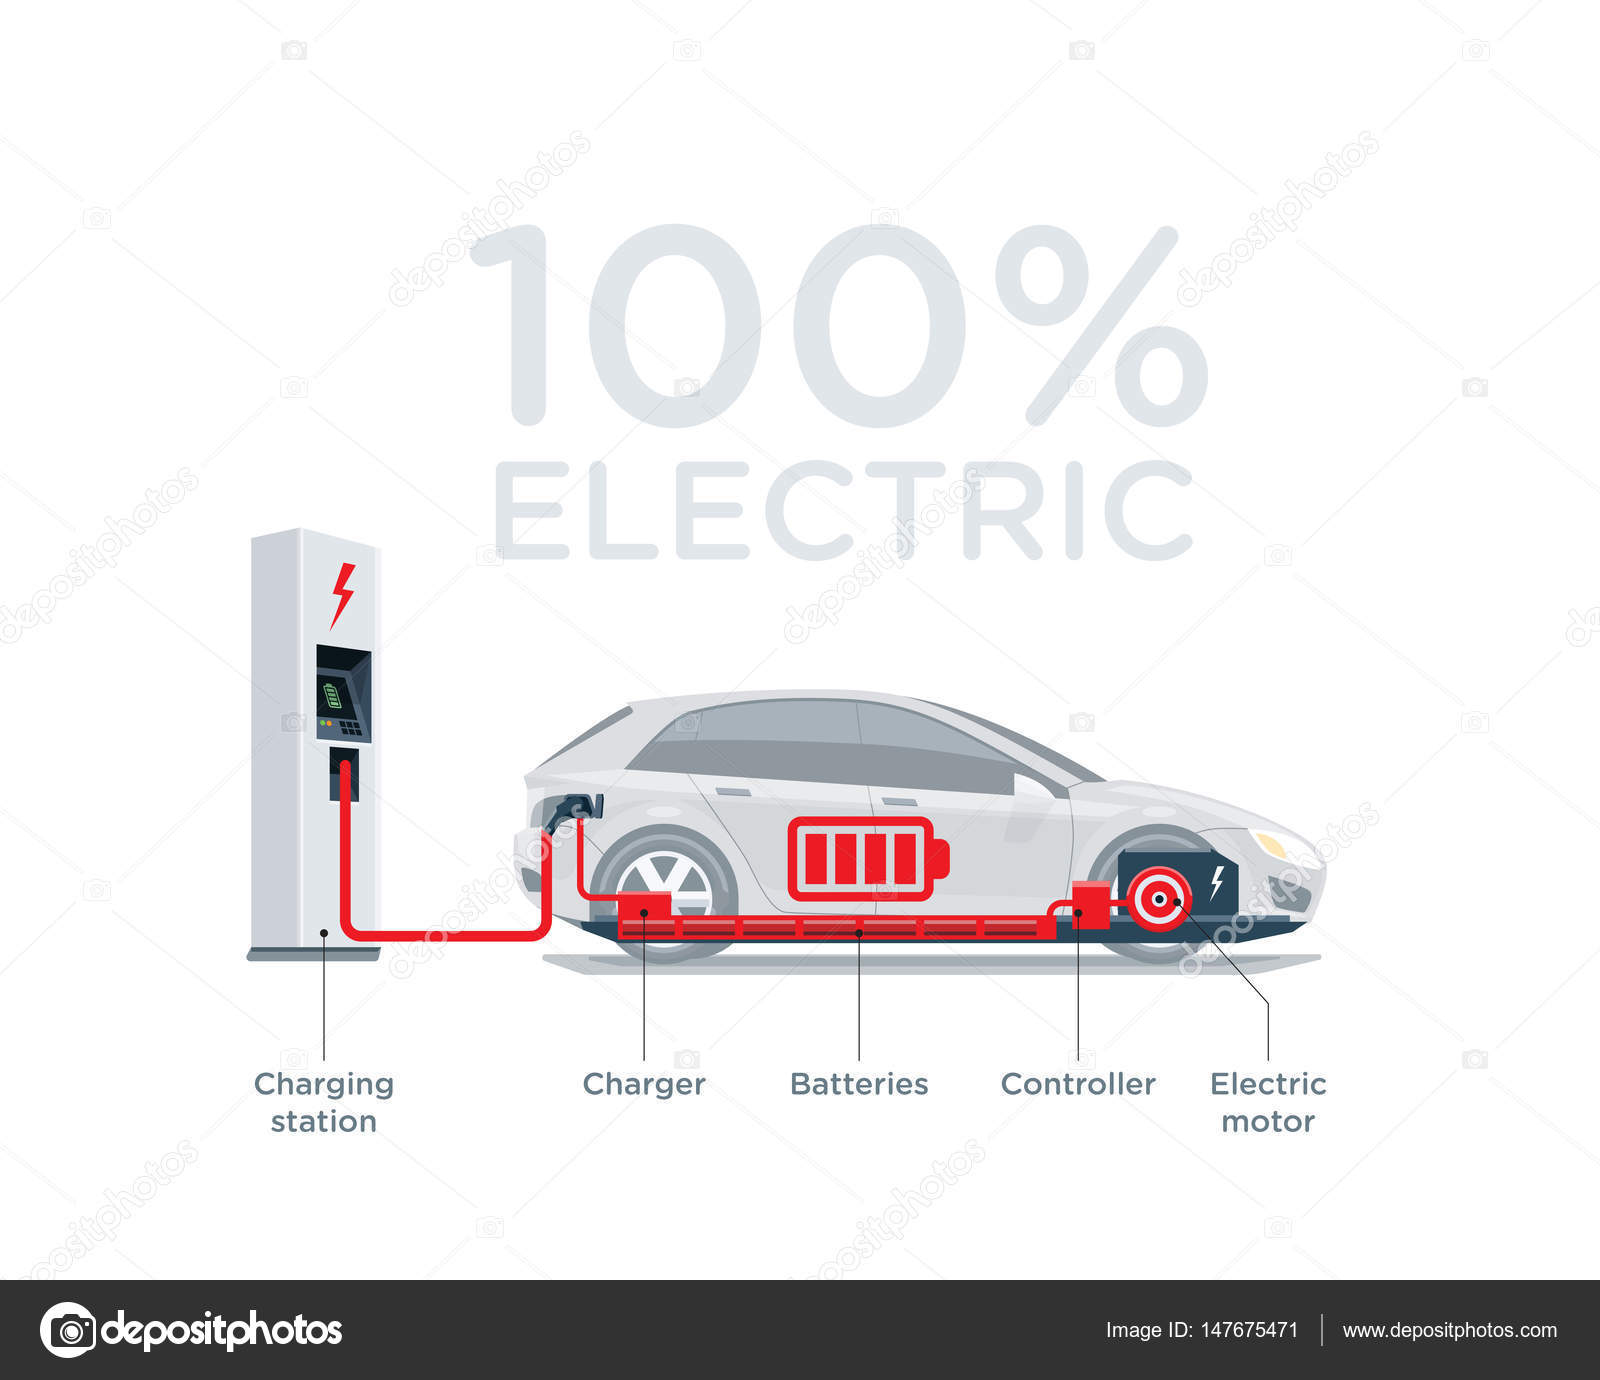 Amazing Electric Car Scheme Simplified Diagram Of Components Stock Vector Wiring Cloud Hisonuggs Outletorg